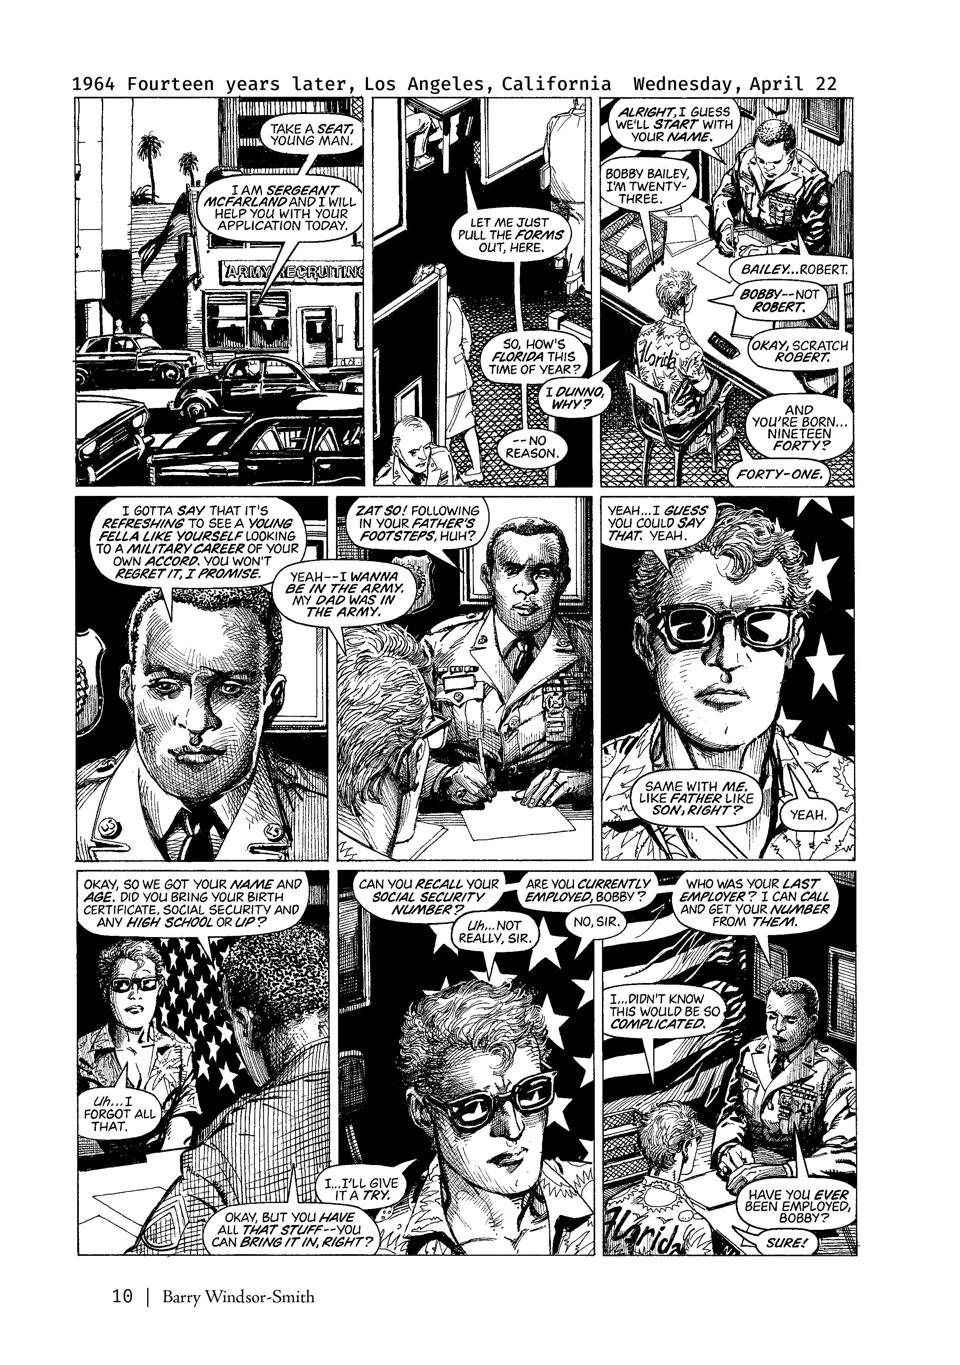 Page from Monsters graphic novel Barry Windor-Smith